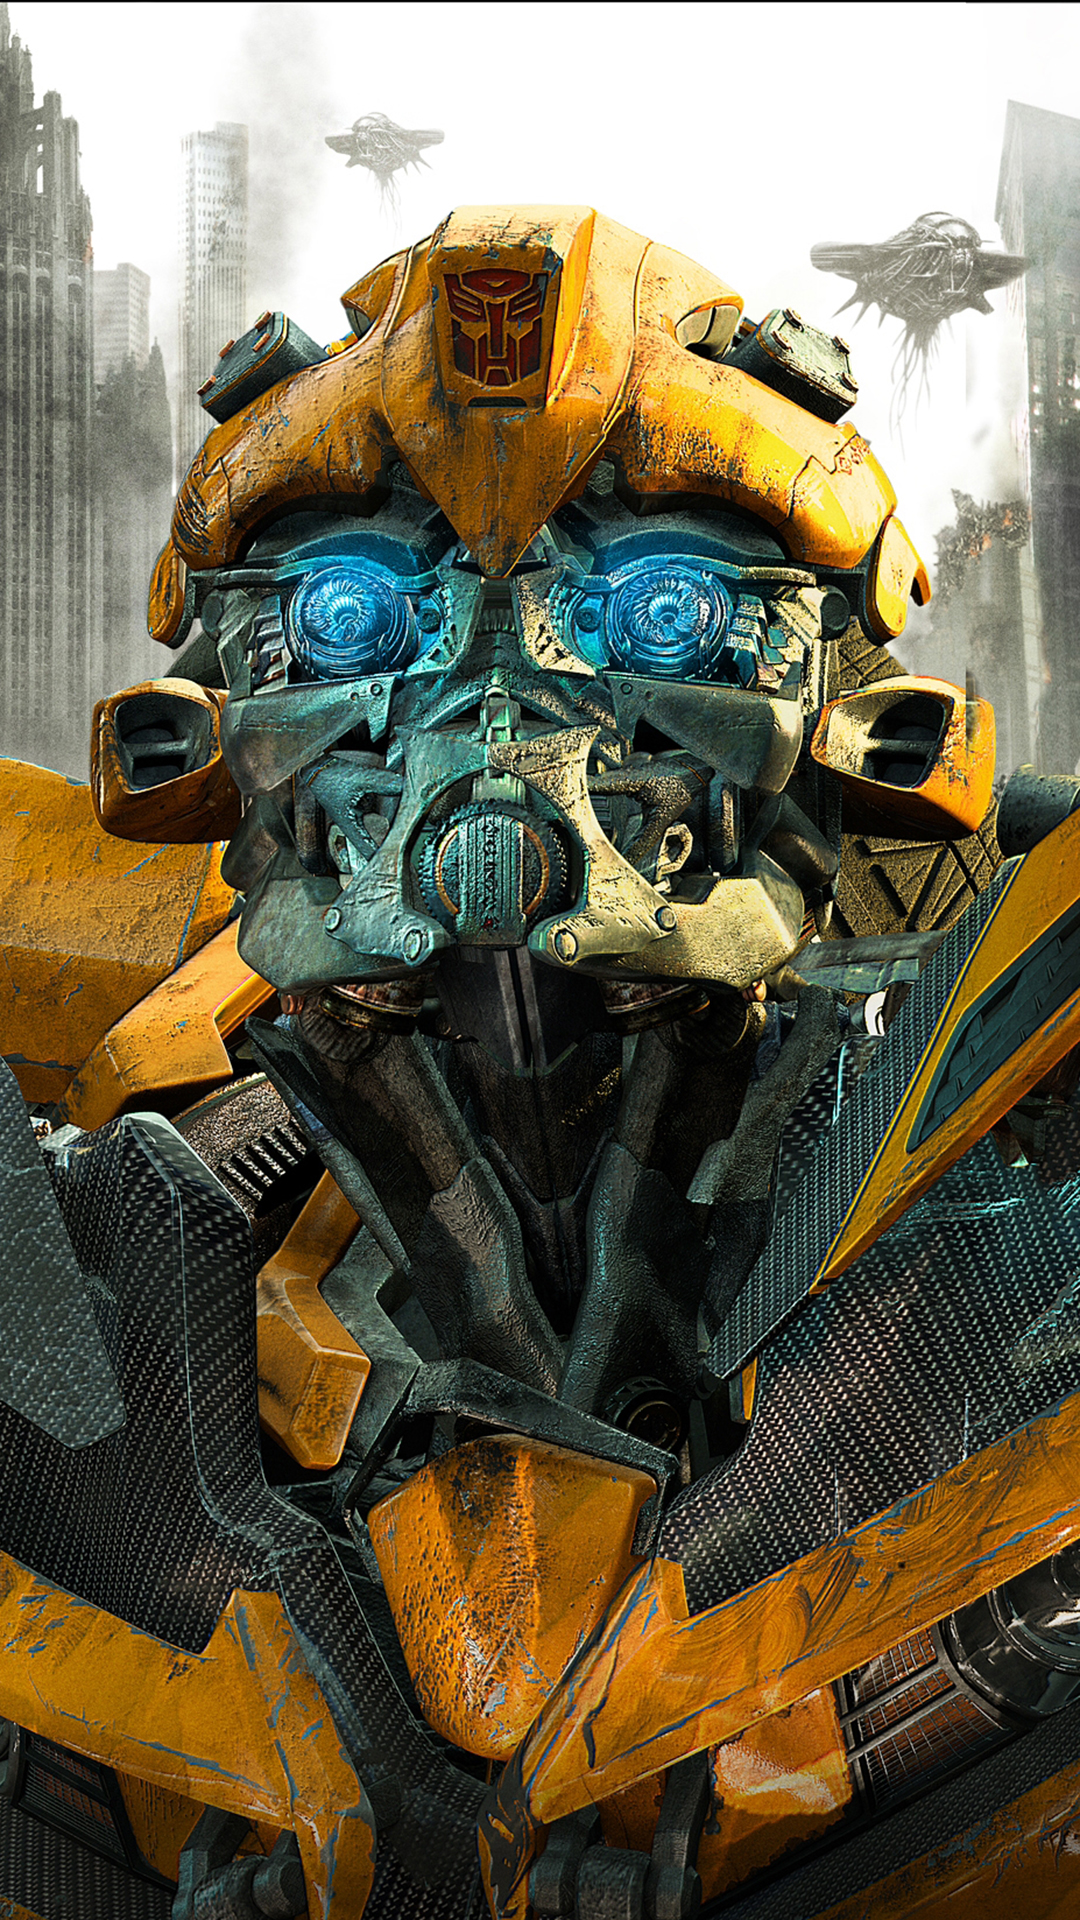 Transformers 5 Hd Wallpapers 1080p Download Transformers Autobot Bumblebee Htc One Wallpaper Best